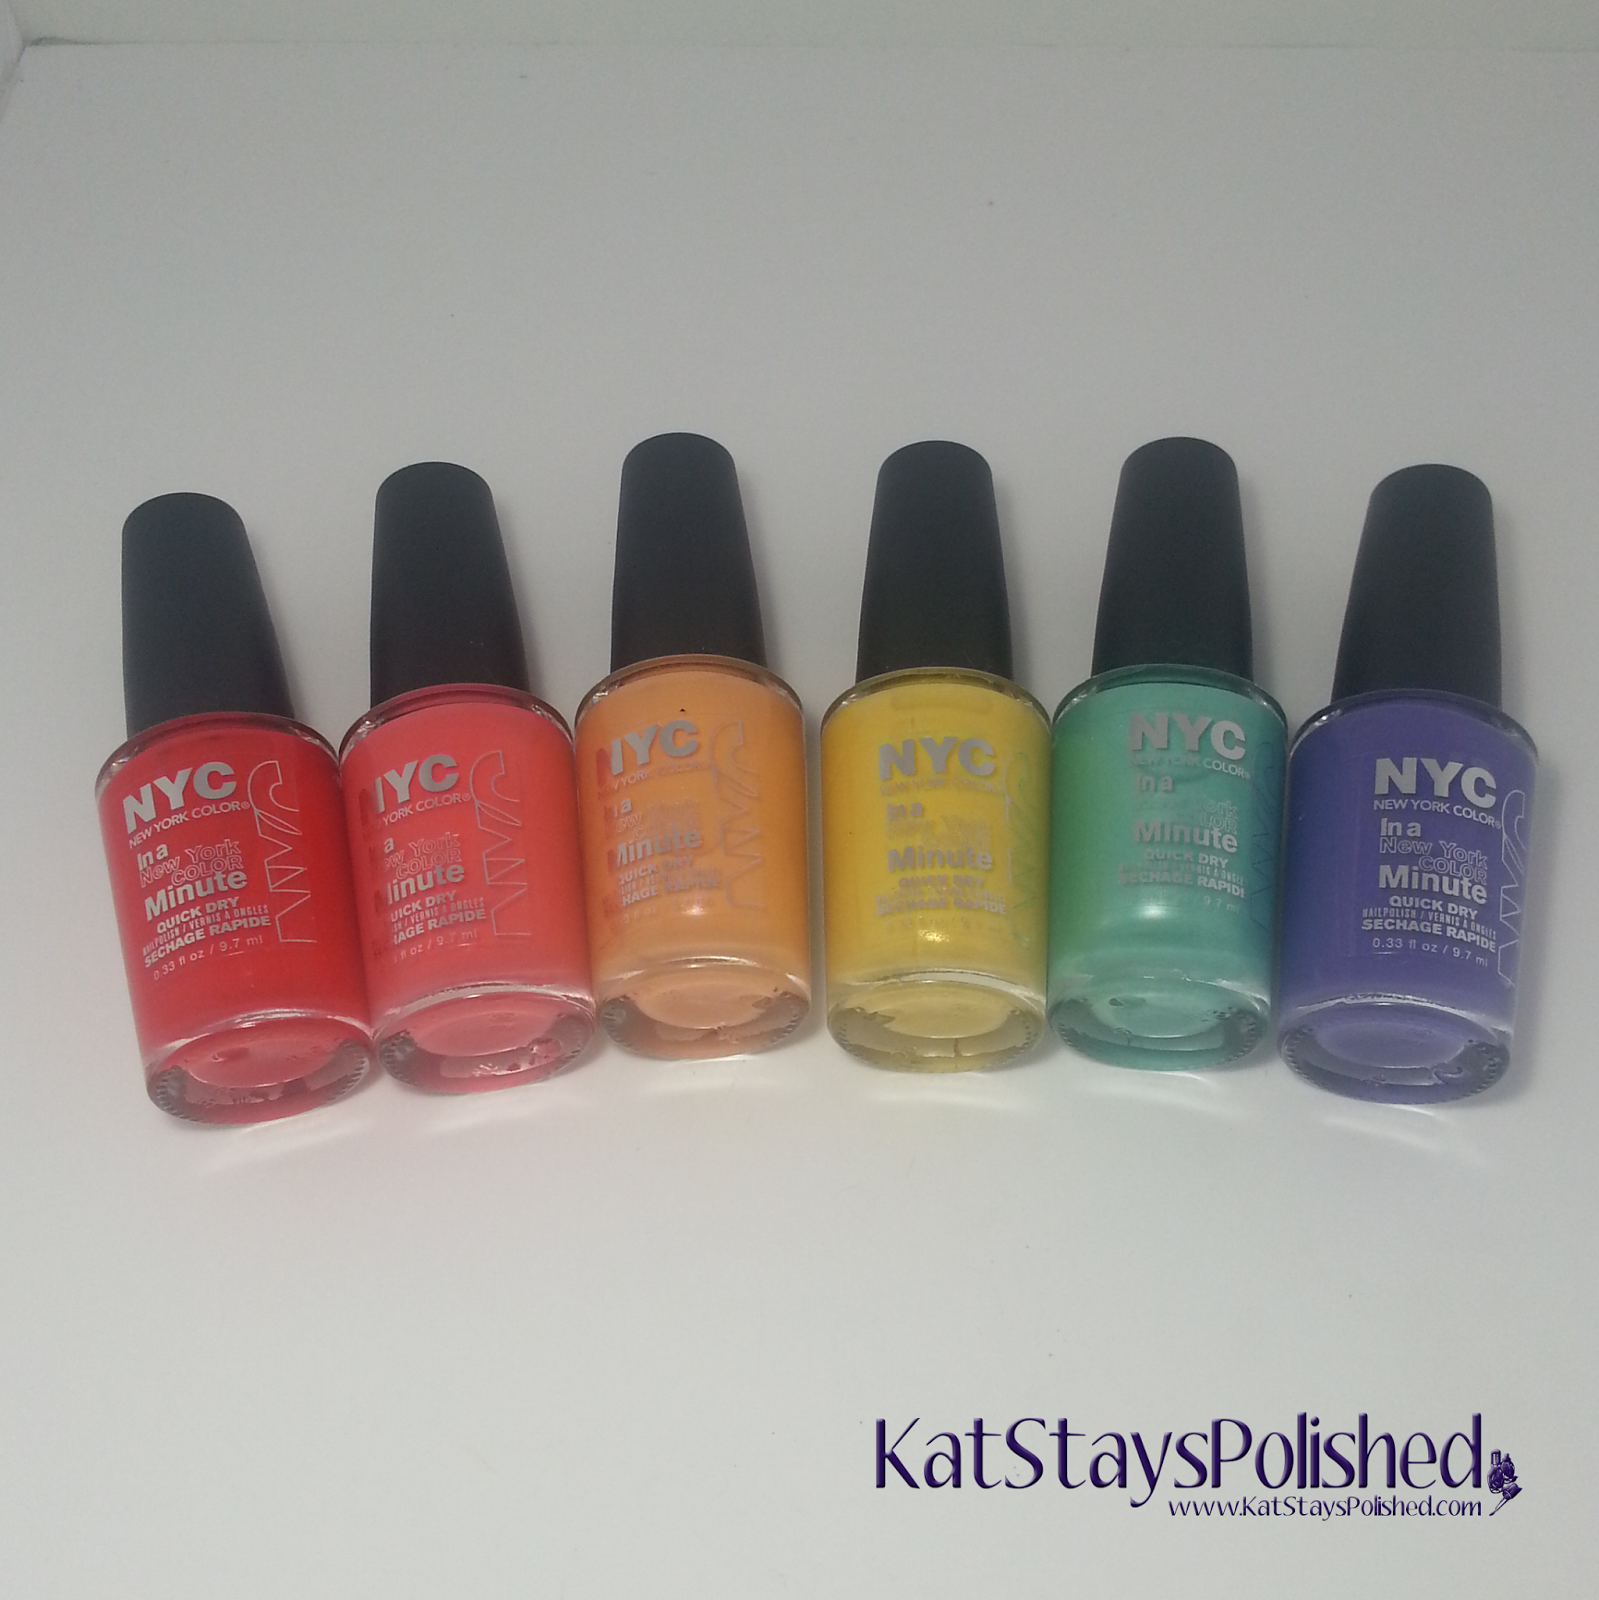 NYC New York Color - City Samba | Kat Stays Polished